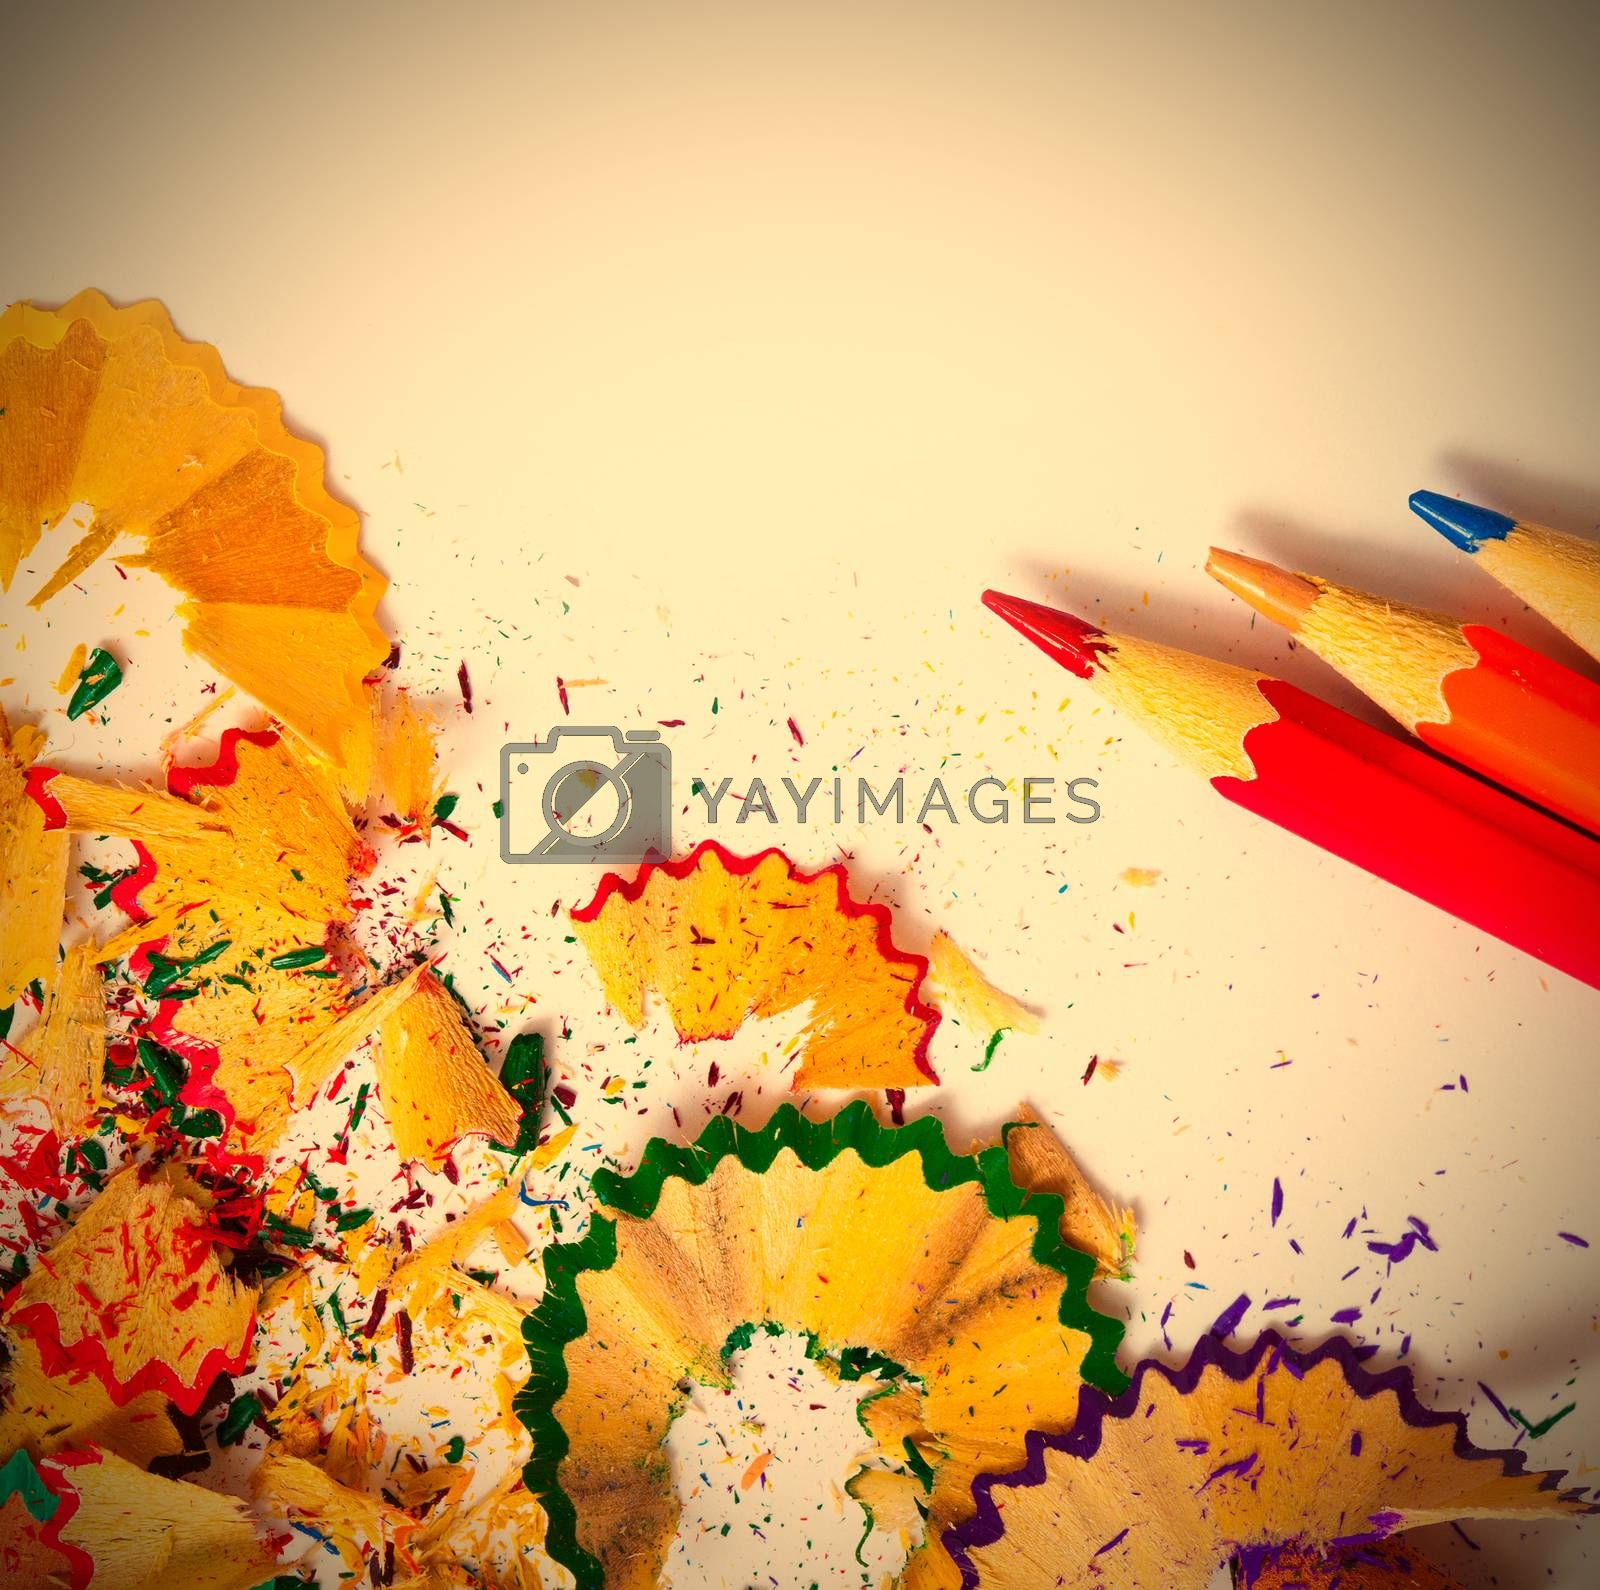 set of colored pencils and shavings on white background with copy space. instagram image style